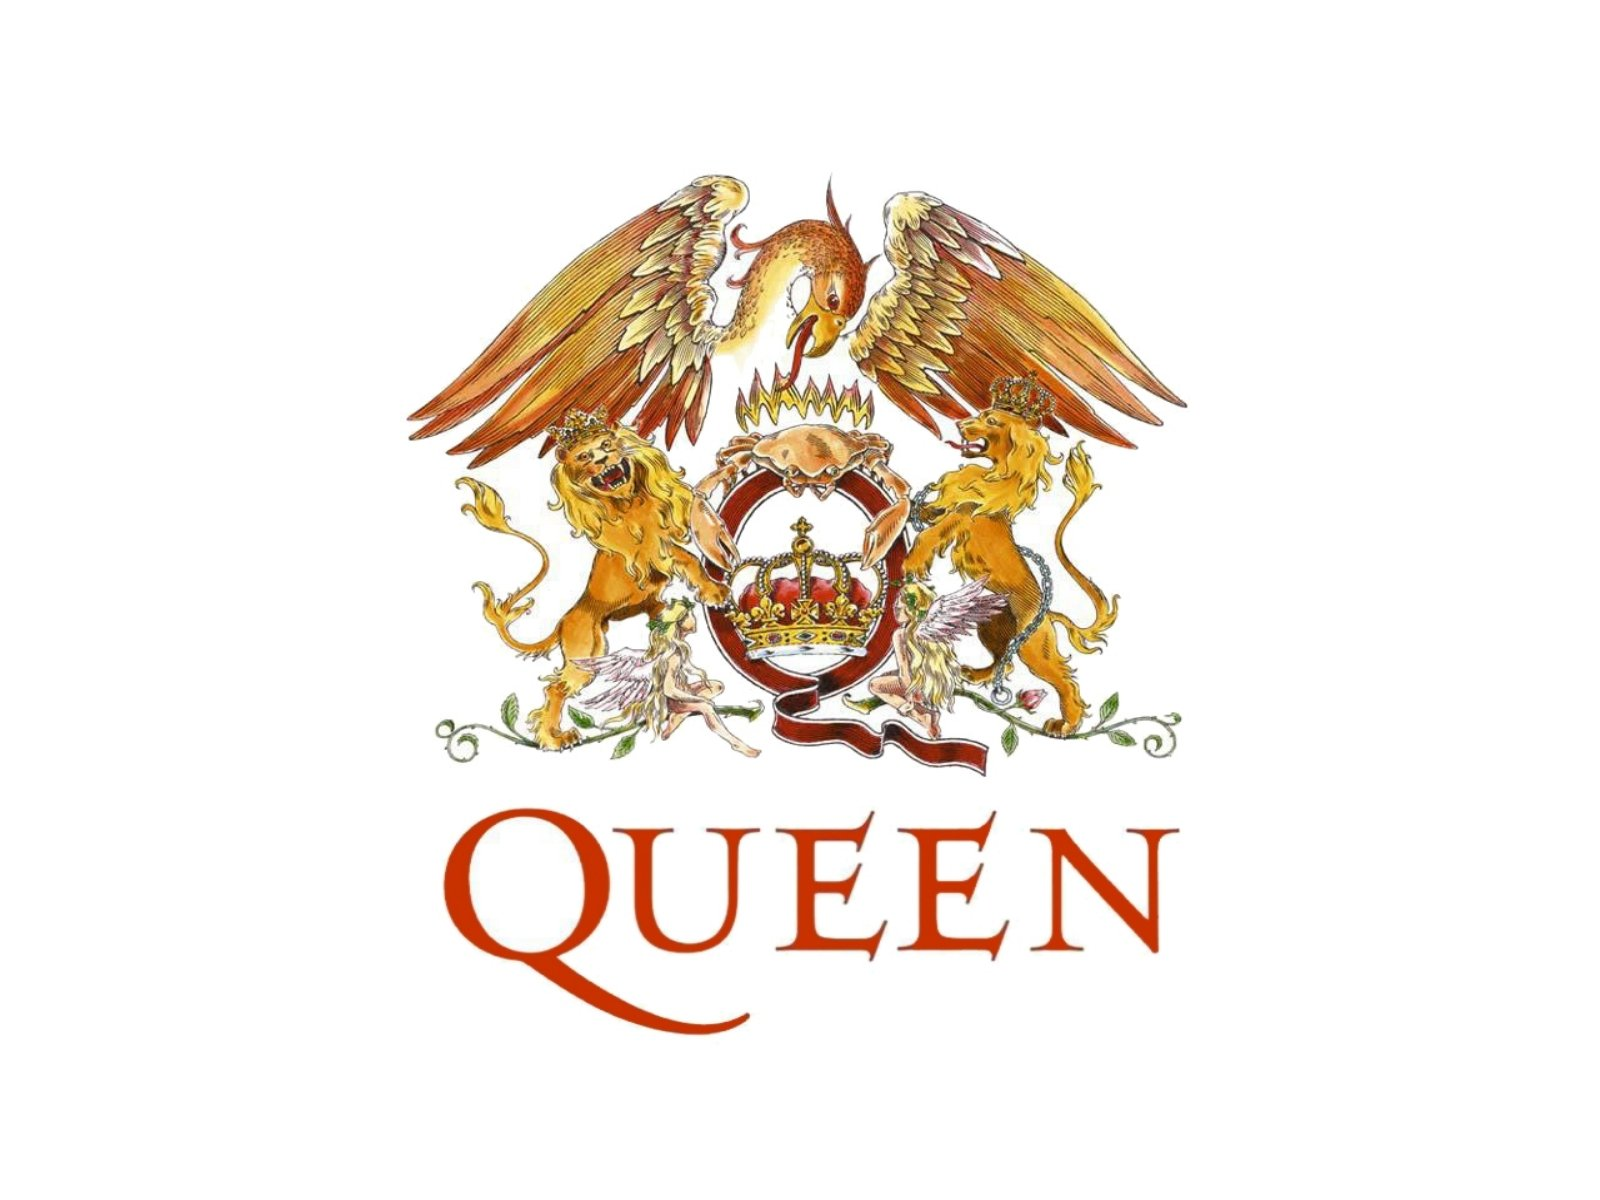 music bands queen music band wallpaper | 1600x1200 | 249014